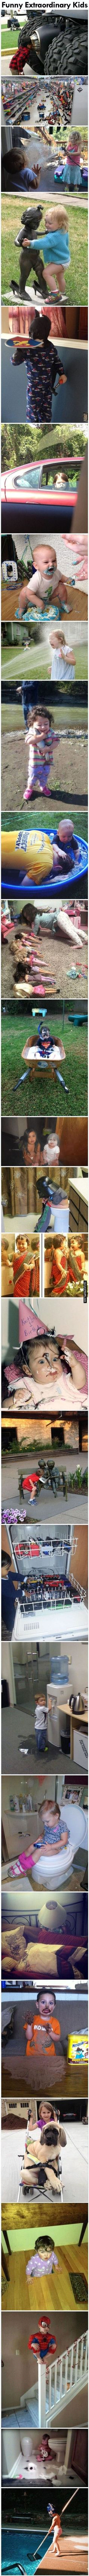 Funny Extraordinary Kids funny lol humor omg funny pictures funny kids hysterical funny pics funny images